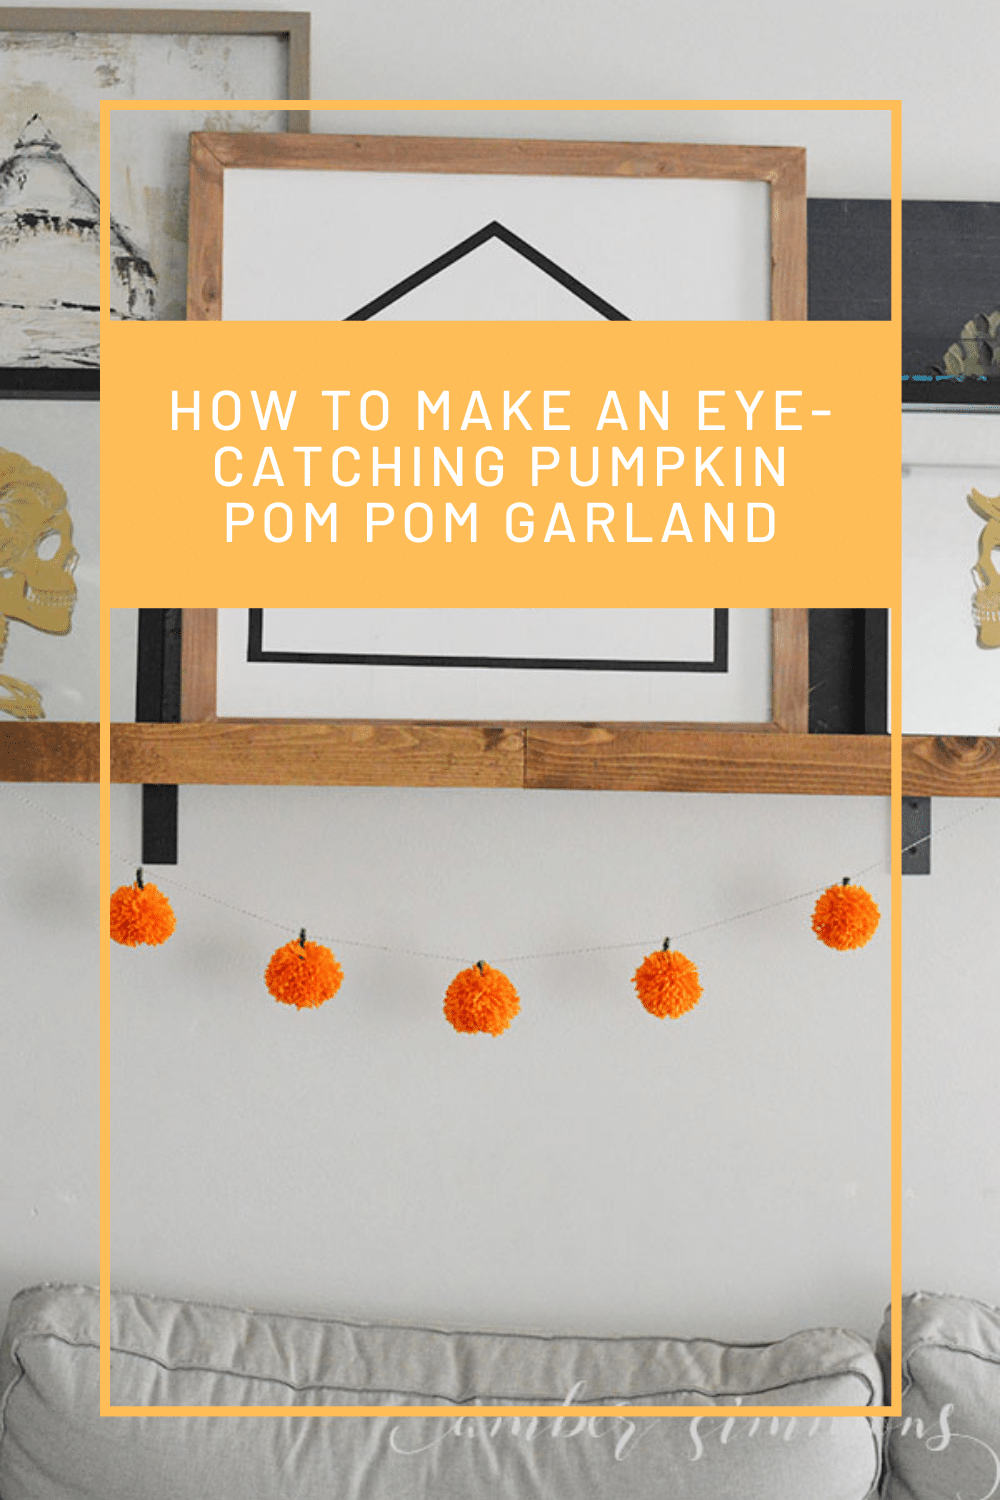 How To Make An Eye Catching Pumpkin Pom Pom Garland Amber Simmons